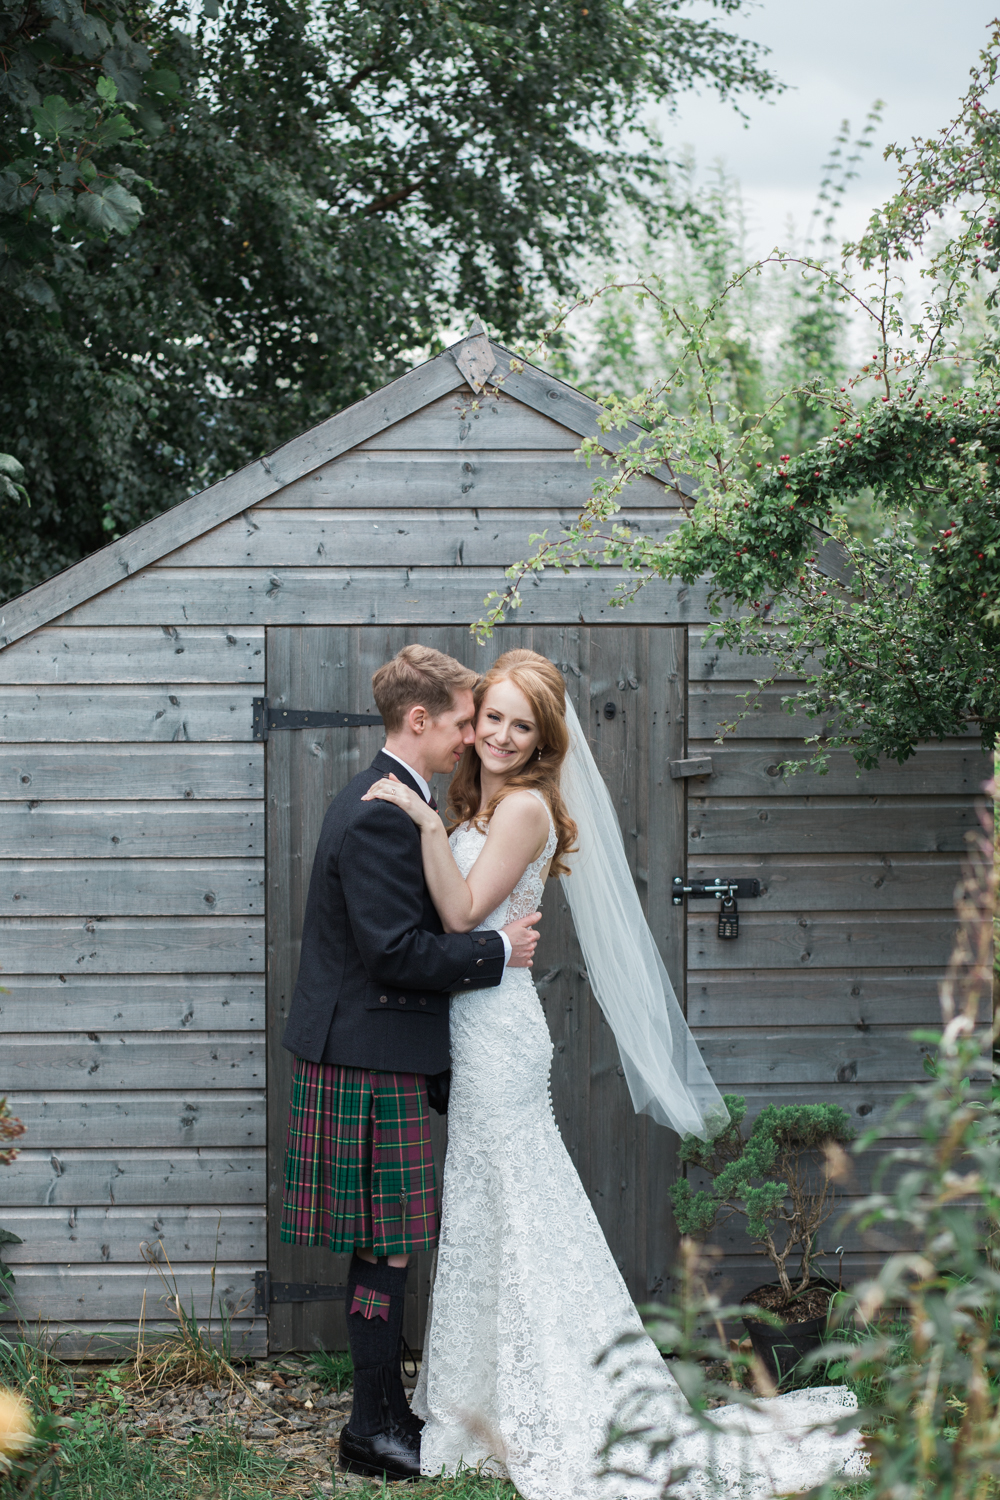 woodend barn wedding, wedding photographer in aberdeen, wedding photographers in aberdeen, relaxed wedding photography Scotland, alternative wedding photography aberdeen, alternative wedding photographer Scotland, natural wedding photography aberdeen